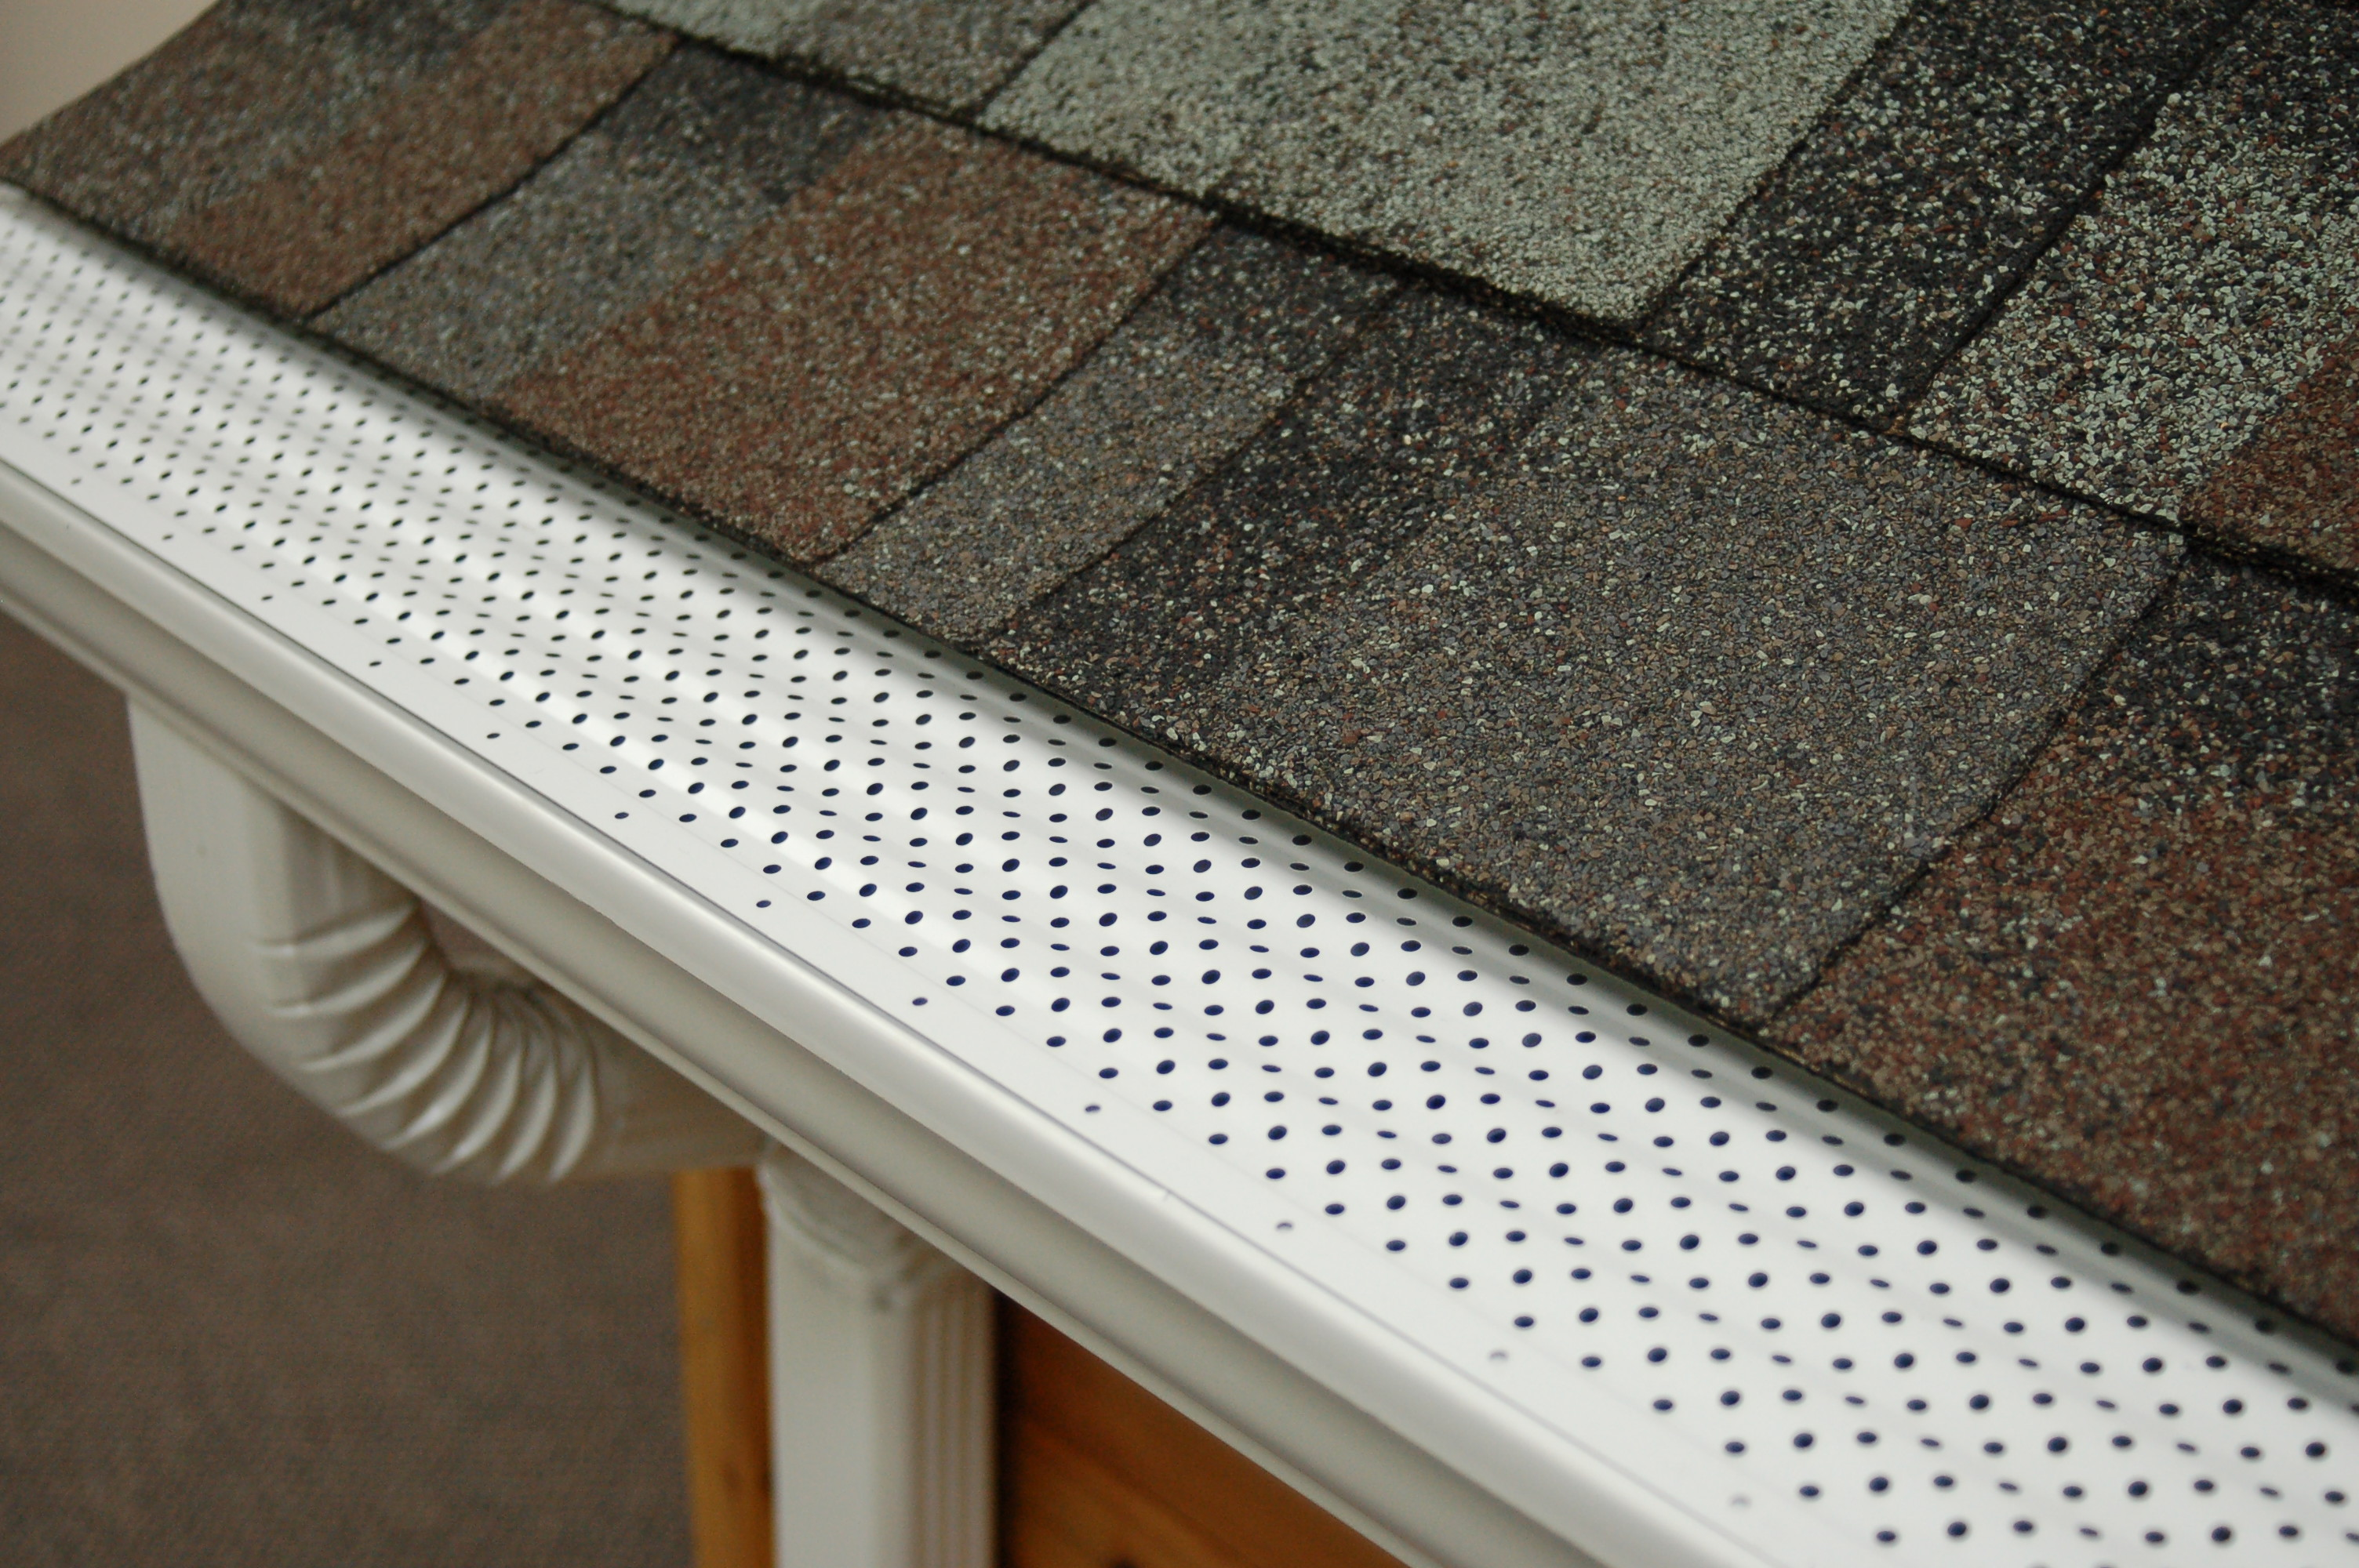 Perforated Aluminum Gutter Guard